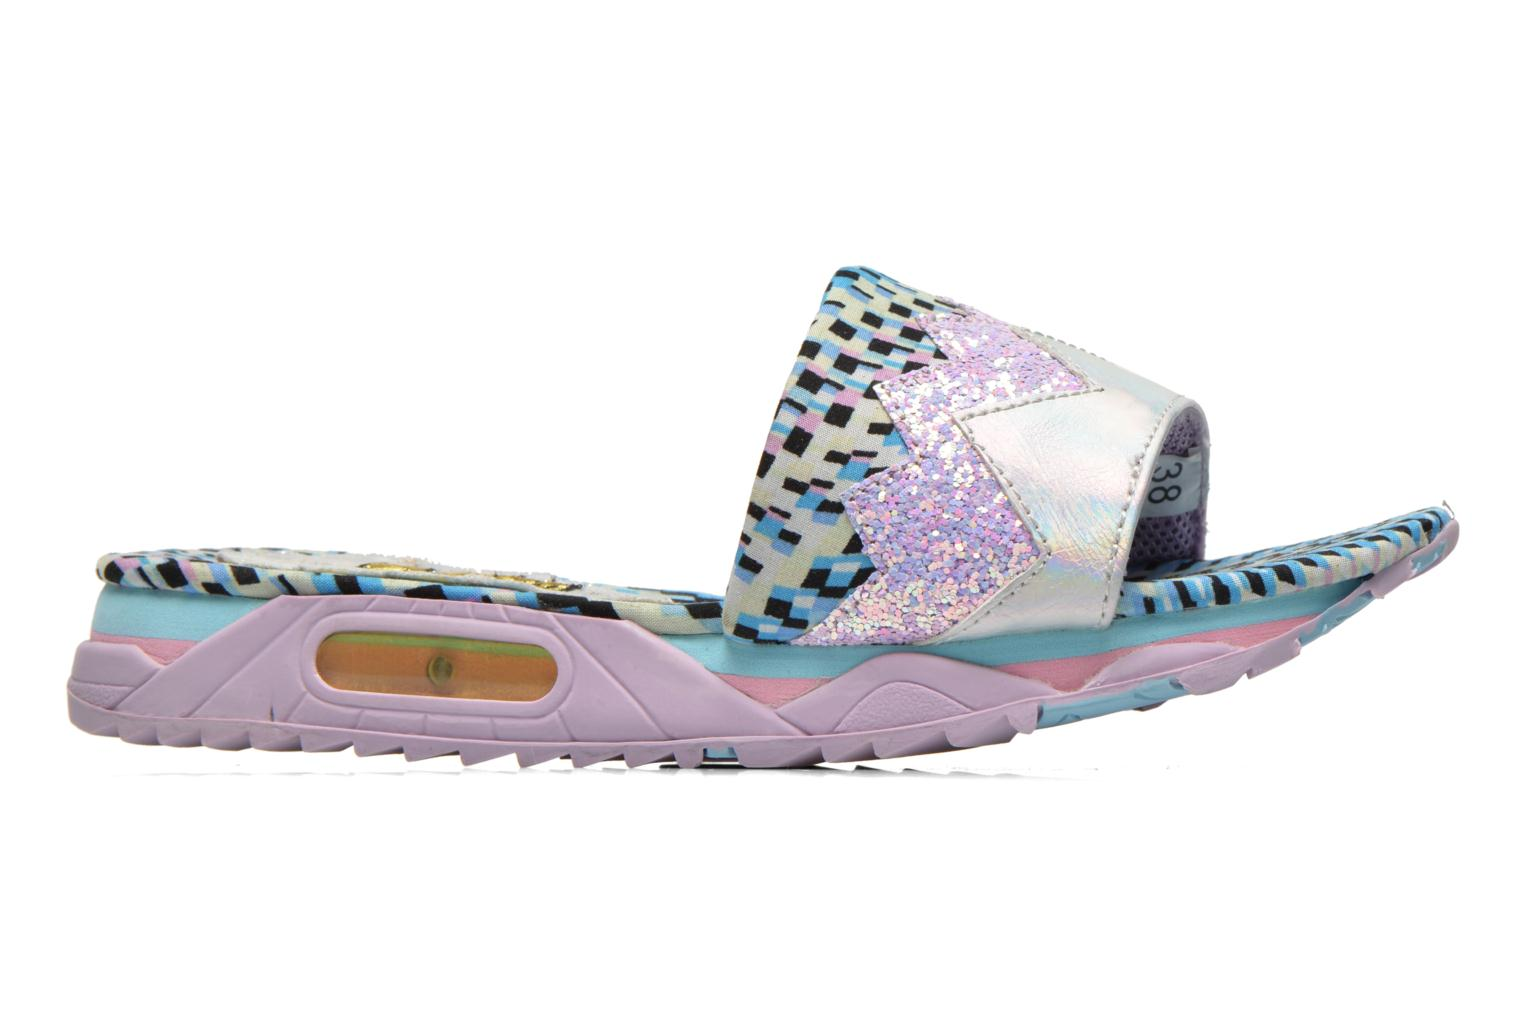 ICED Slide Away PE15 Pink Glitter/PU